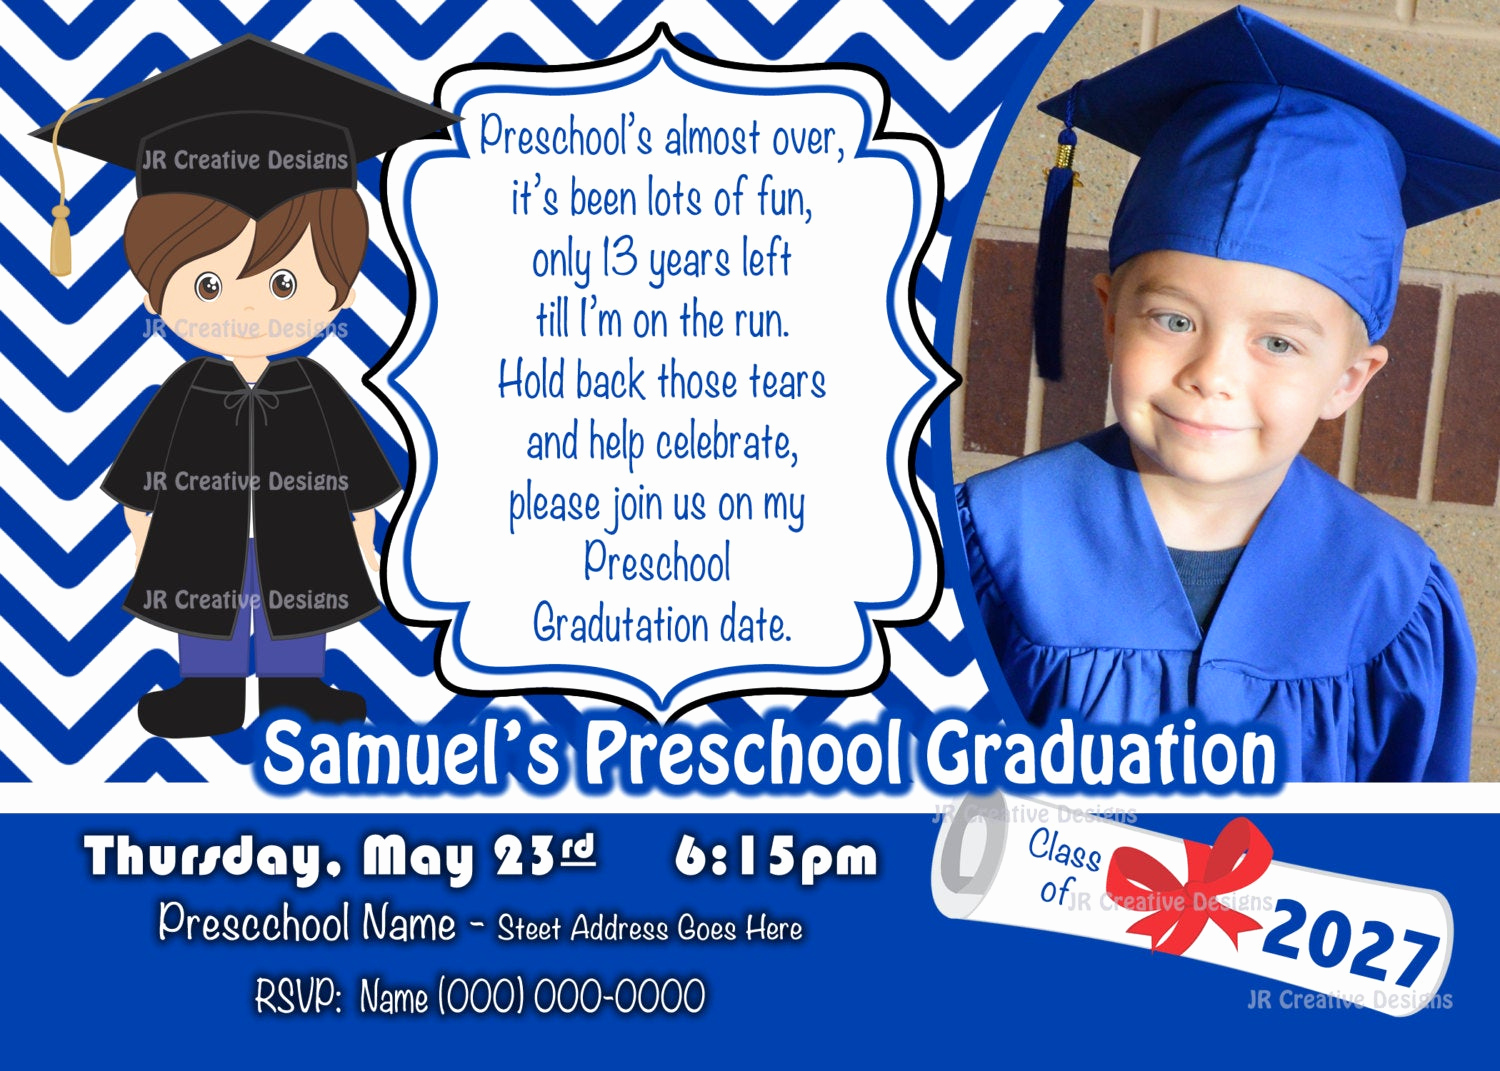 Preschool Graduation Invitation Ideas Beautiful Preschool Graduation Invitation Kindergarten Graduation